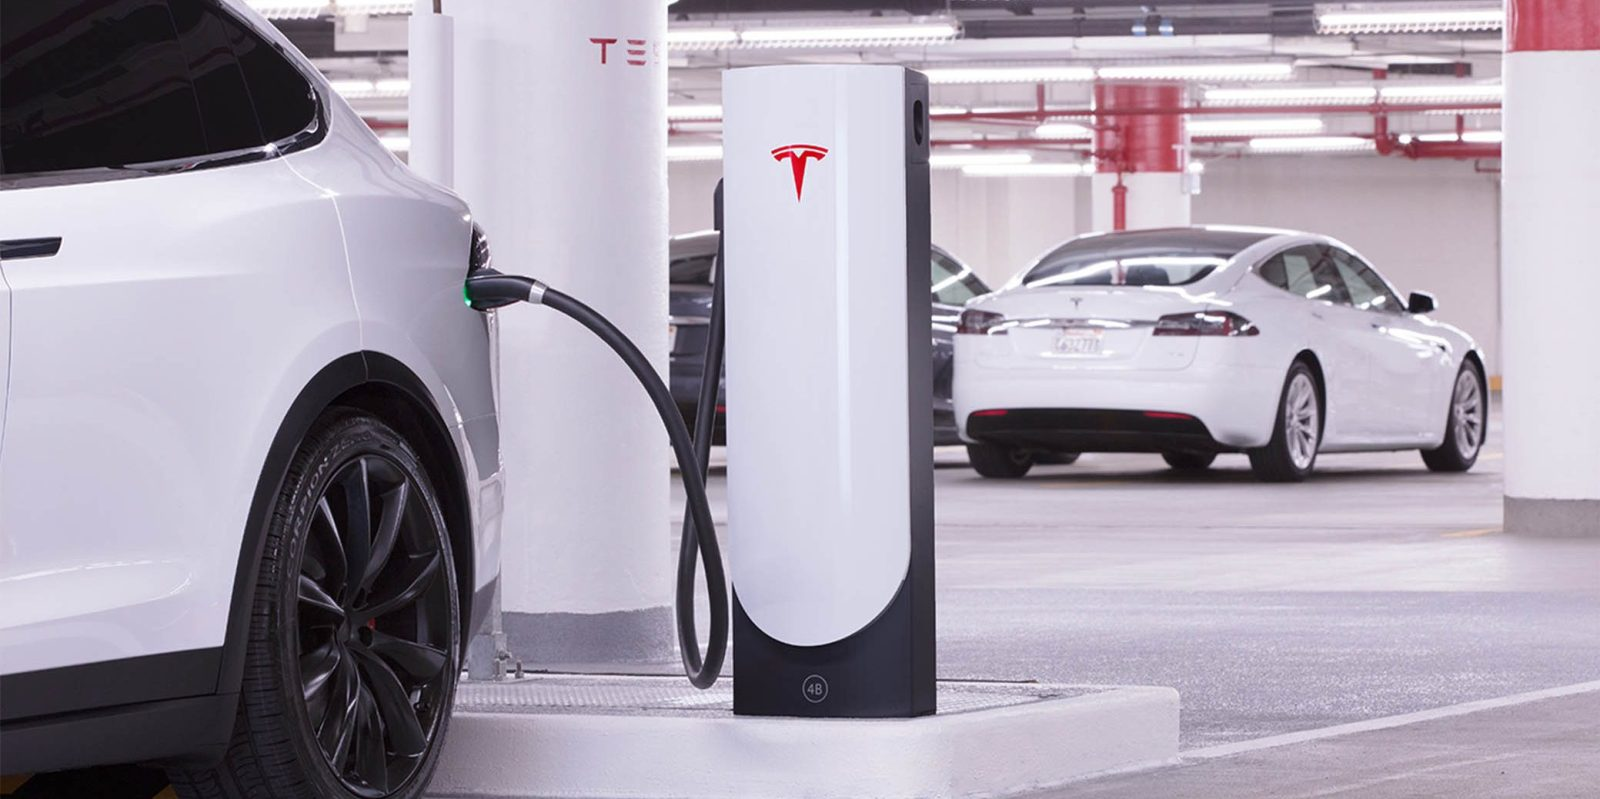 Tesla pushes Supercharger V3 to 'end of the year', says it